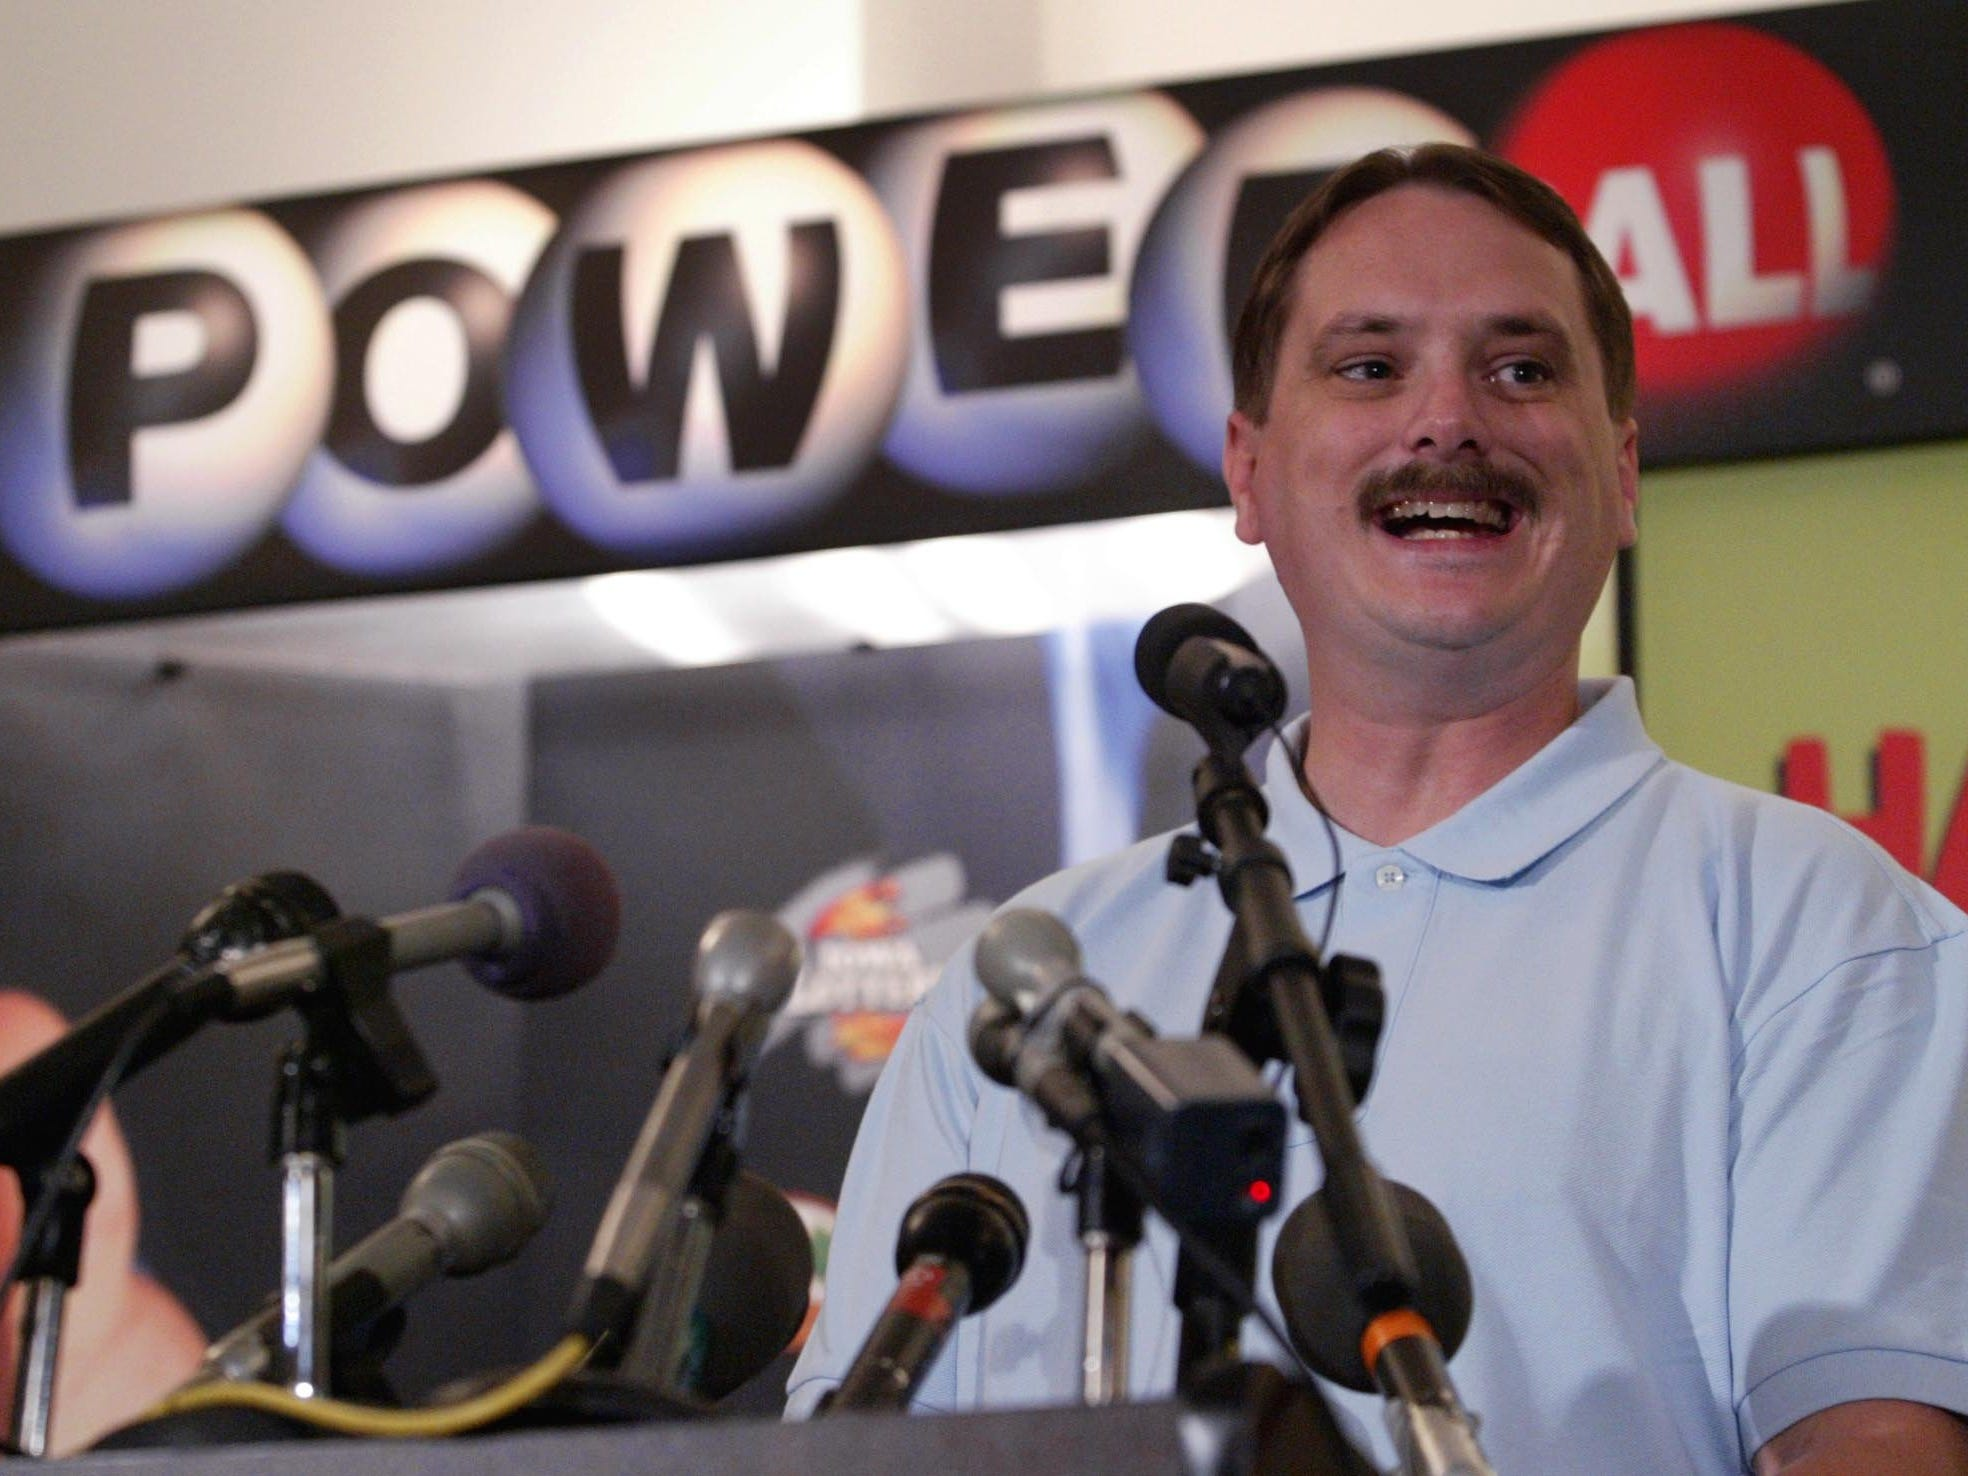 October 2006: Fort Dodge's Timothy Guderian won a Powerball jackpot prize worth $200.8 million.